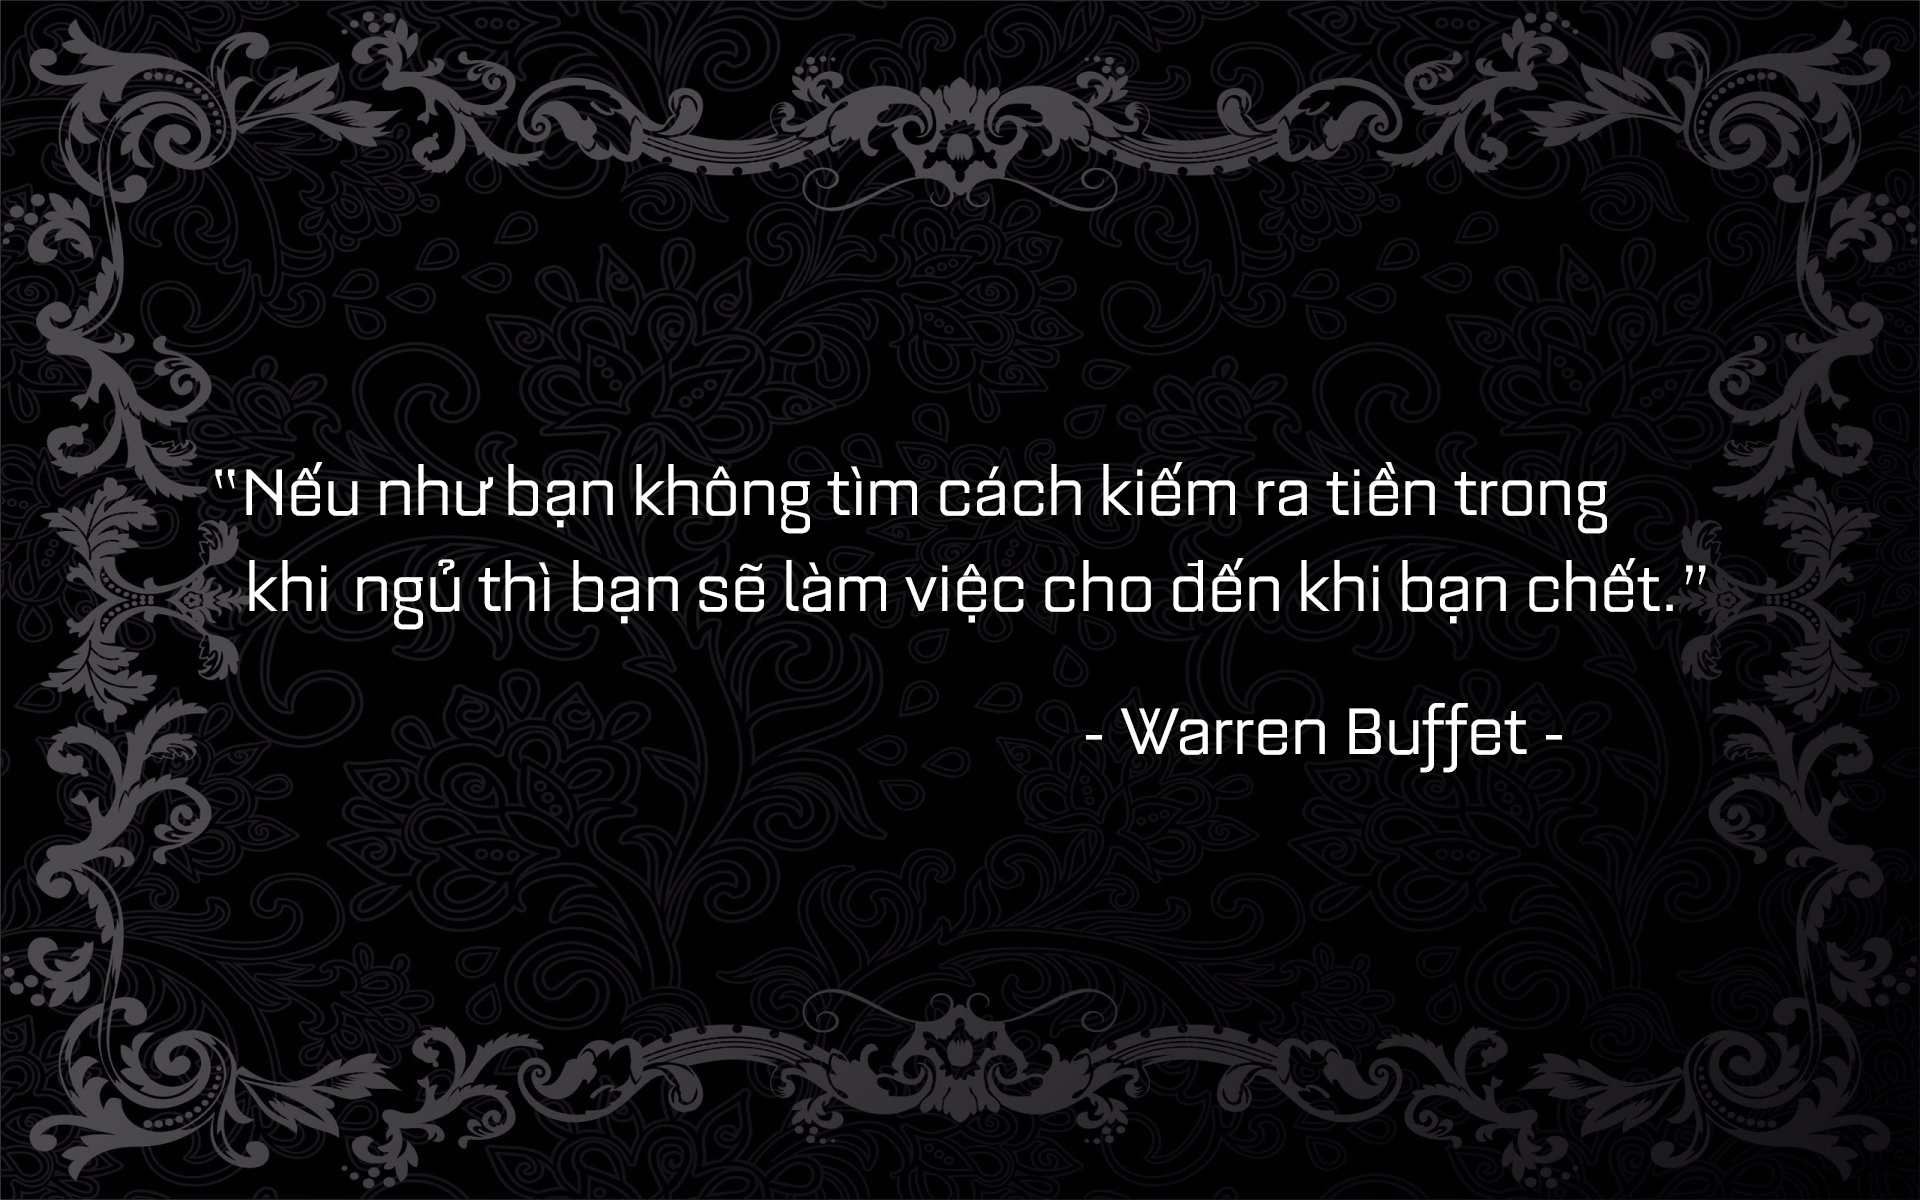 buffet quote 2.